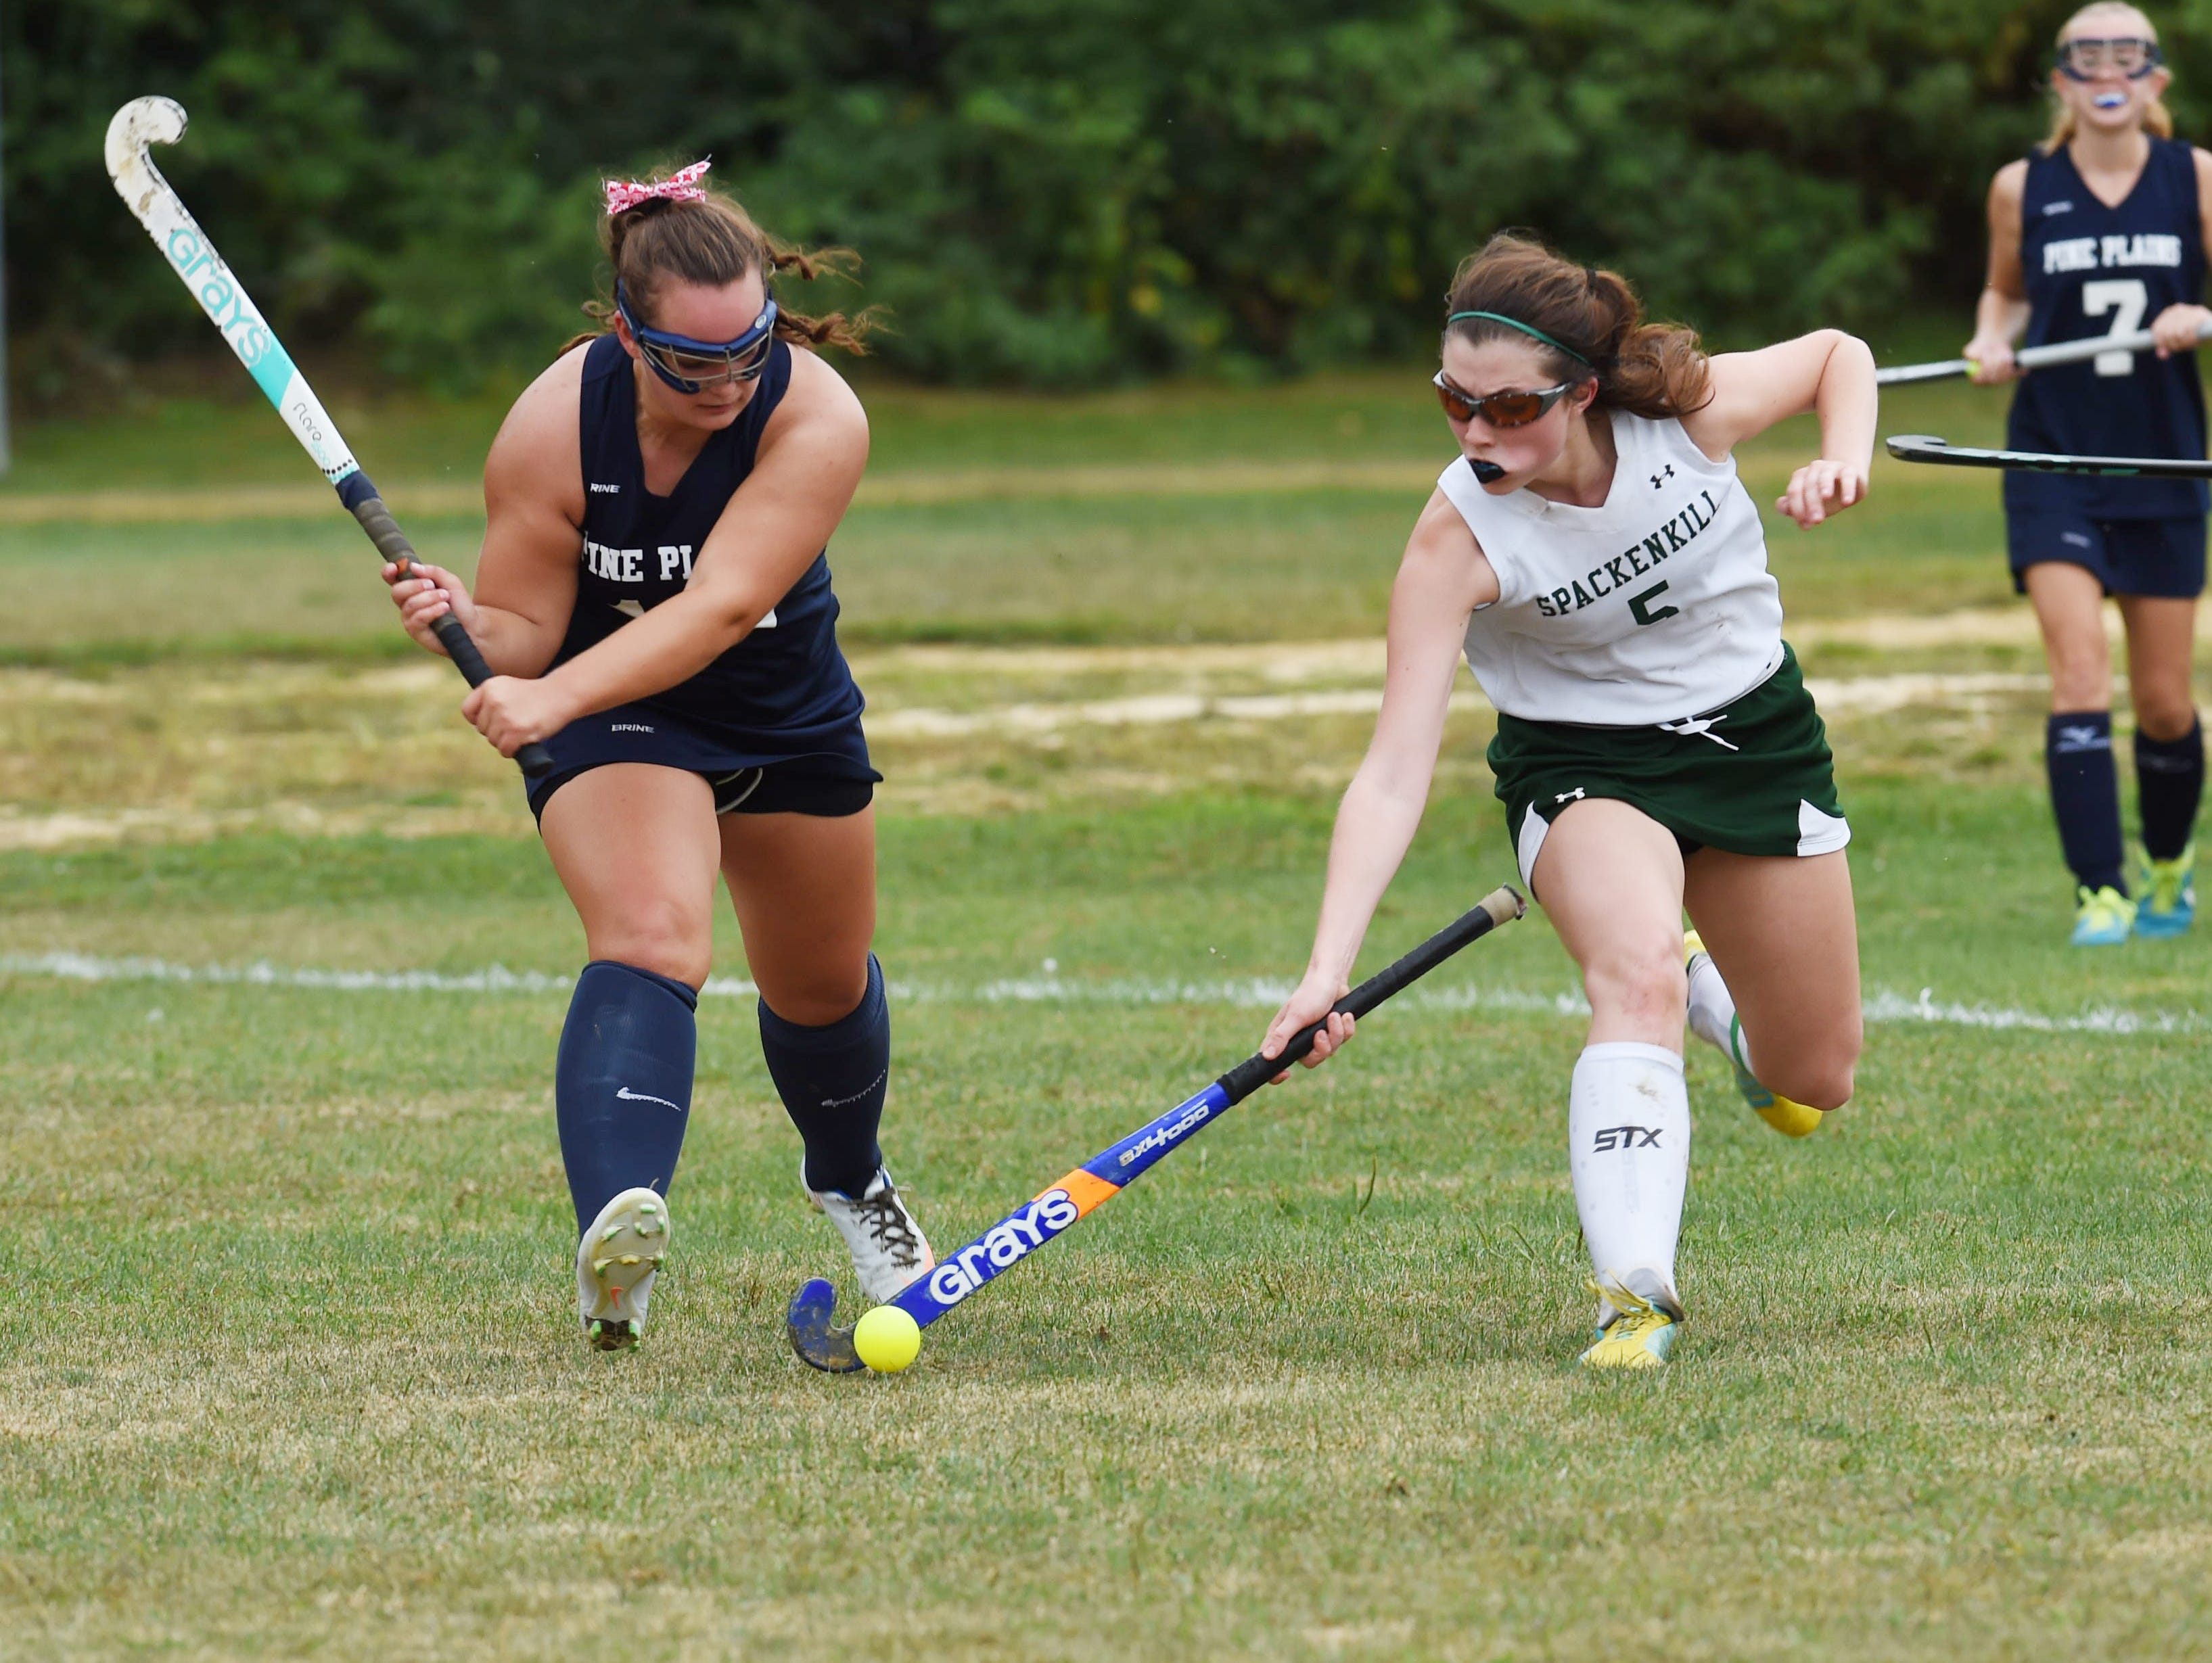 Spackenkill's Sarah Bowen, right, goes for the ball while Pine Plains' Meghan Murray, left, defends during Monday's game.